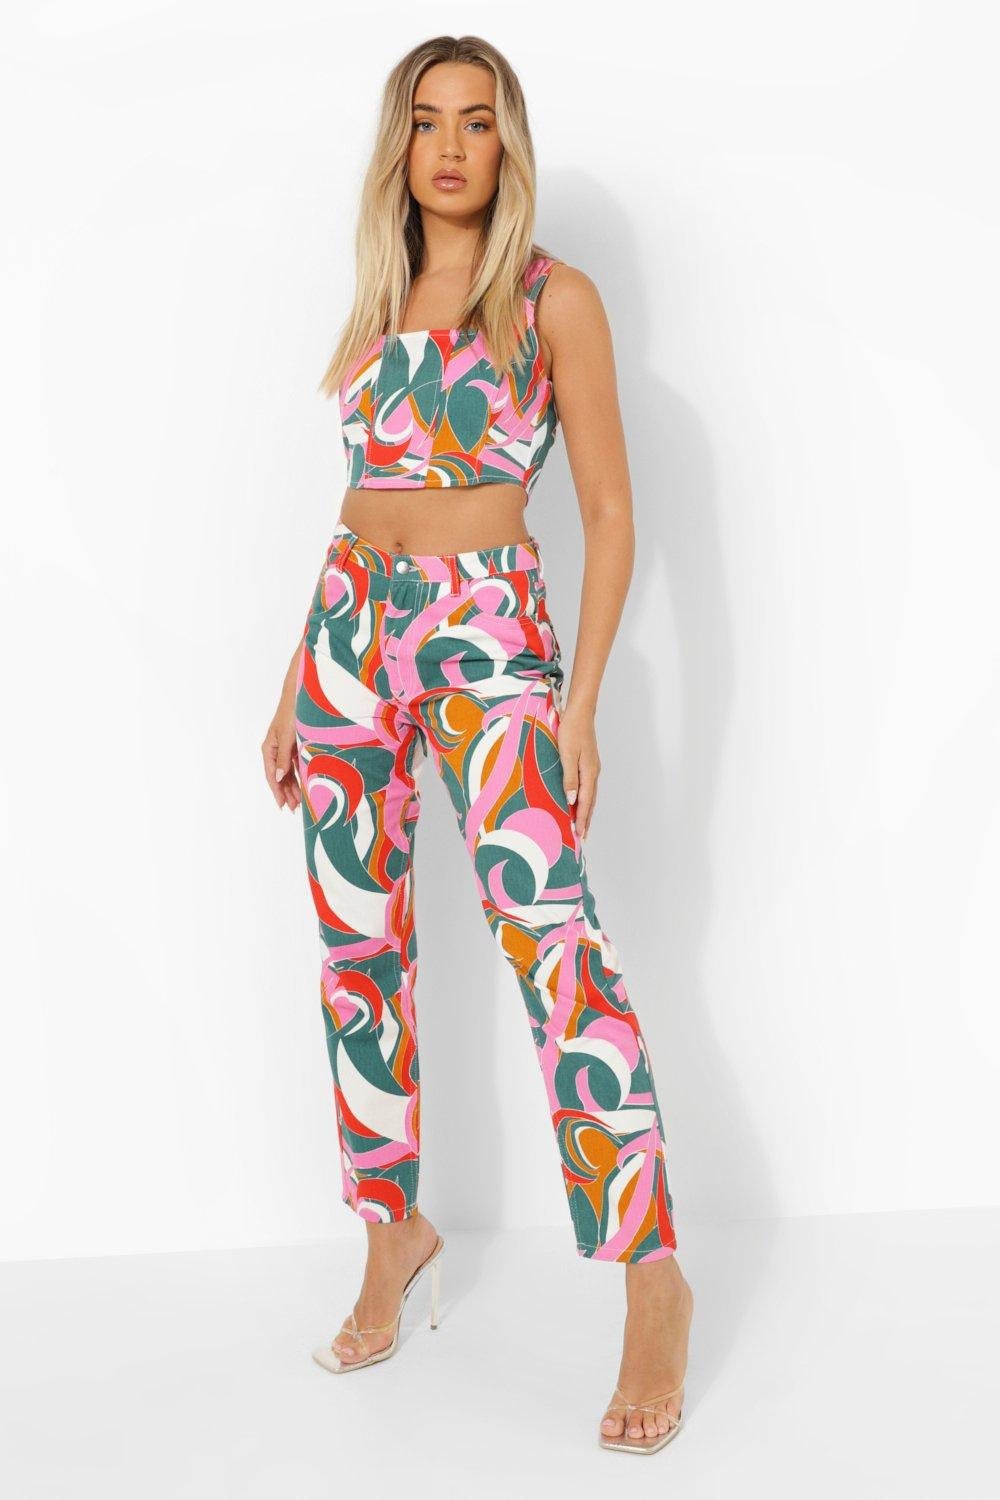 60s Pants, Jeans, Hippie, Flares, Jumpsuits Womens Abstract Printed Boyfriend Jeans - Multi - 12 $31.50 AT vintagedancer.com